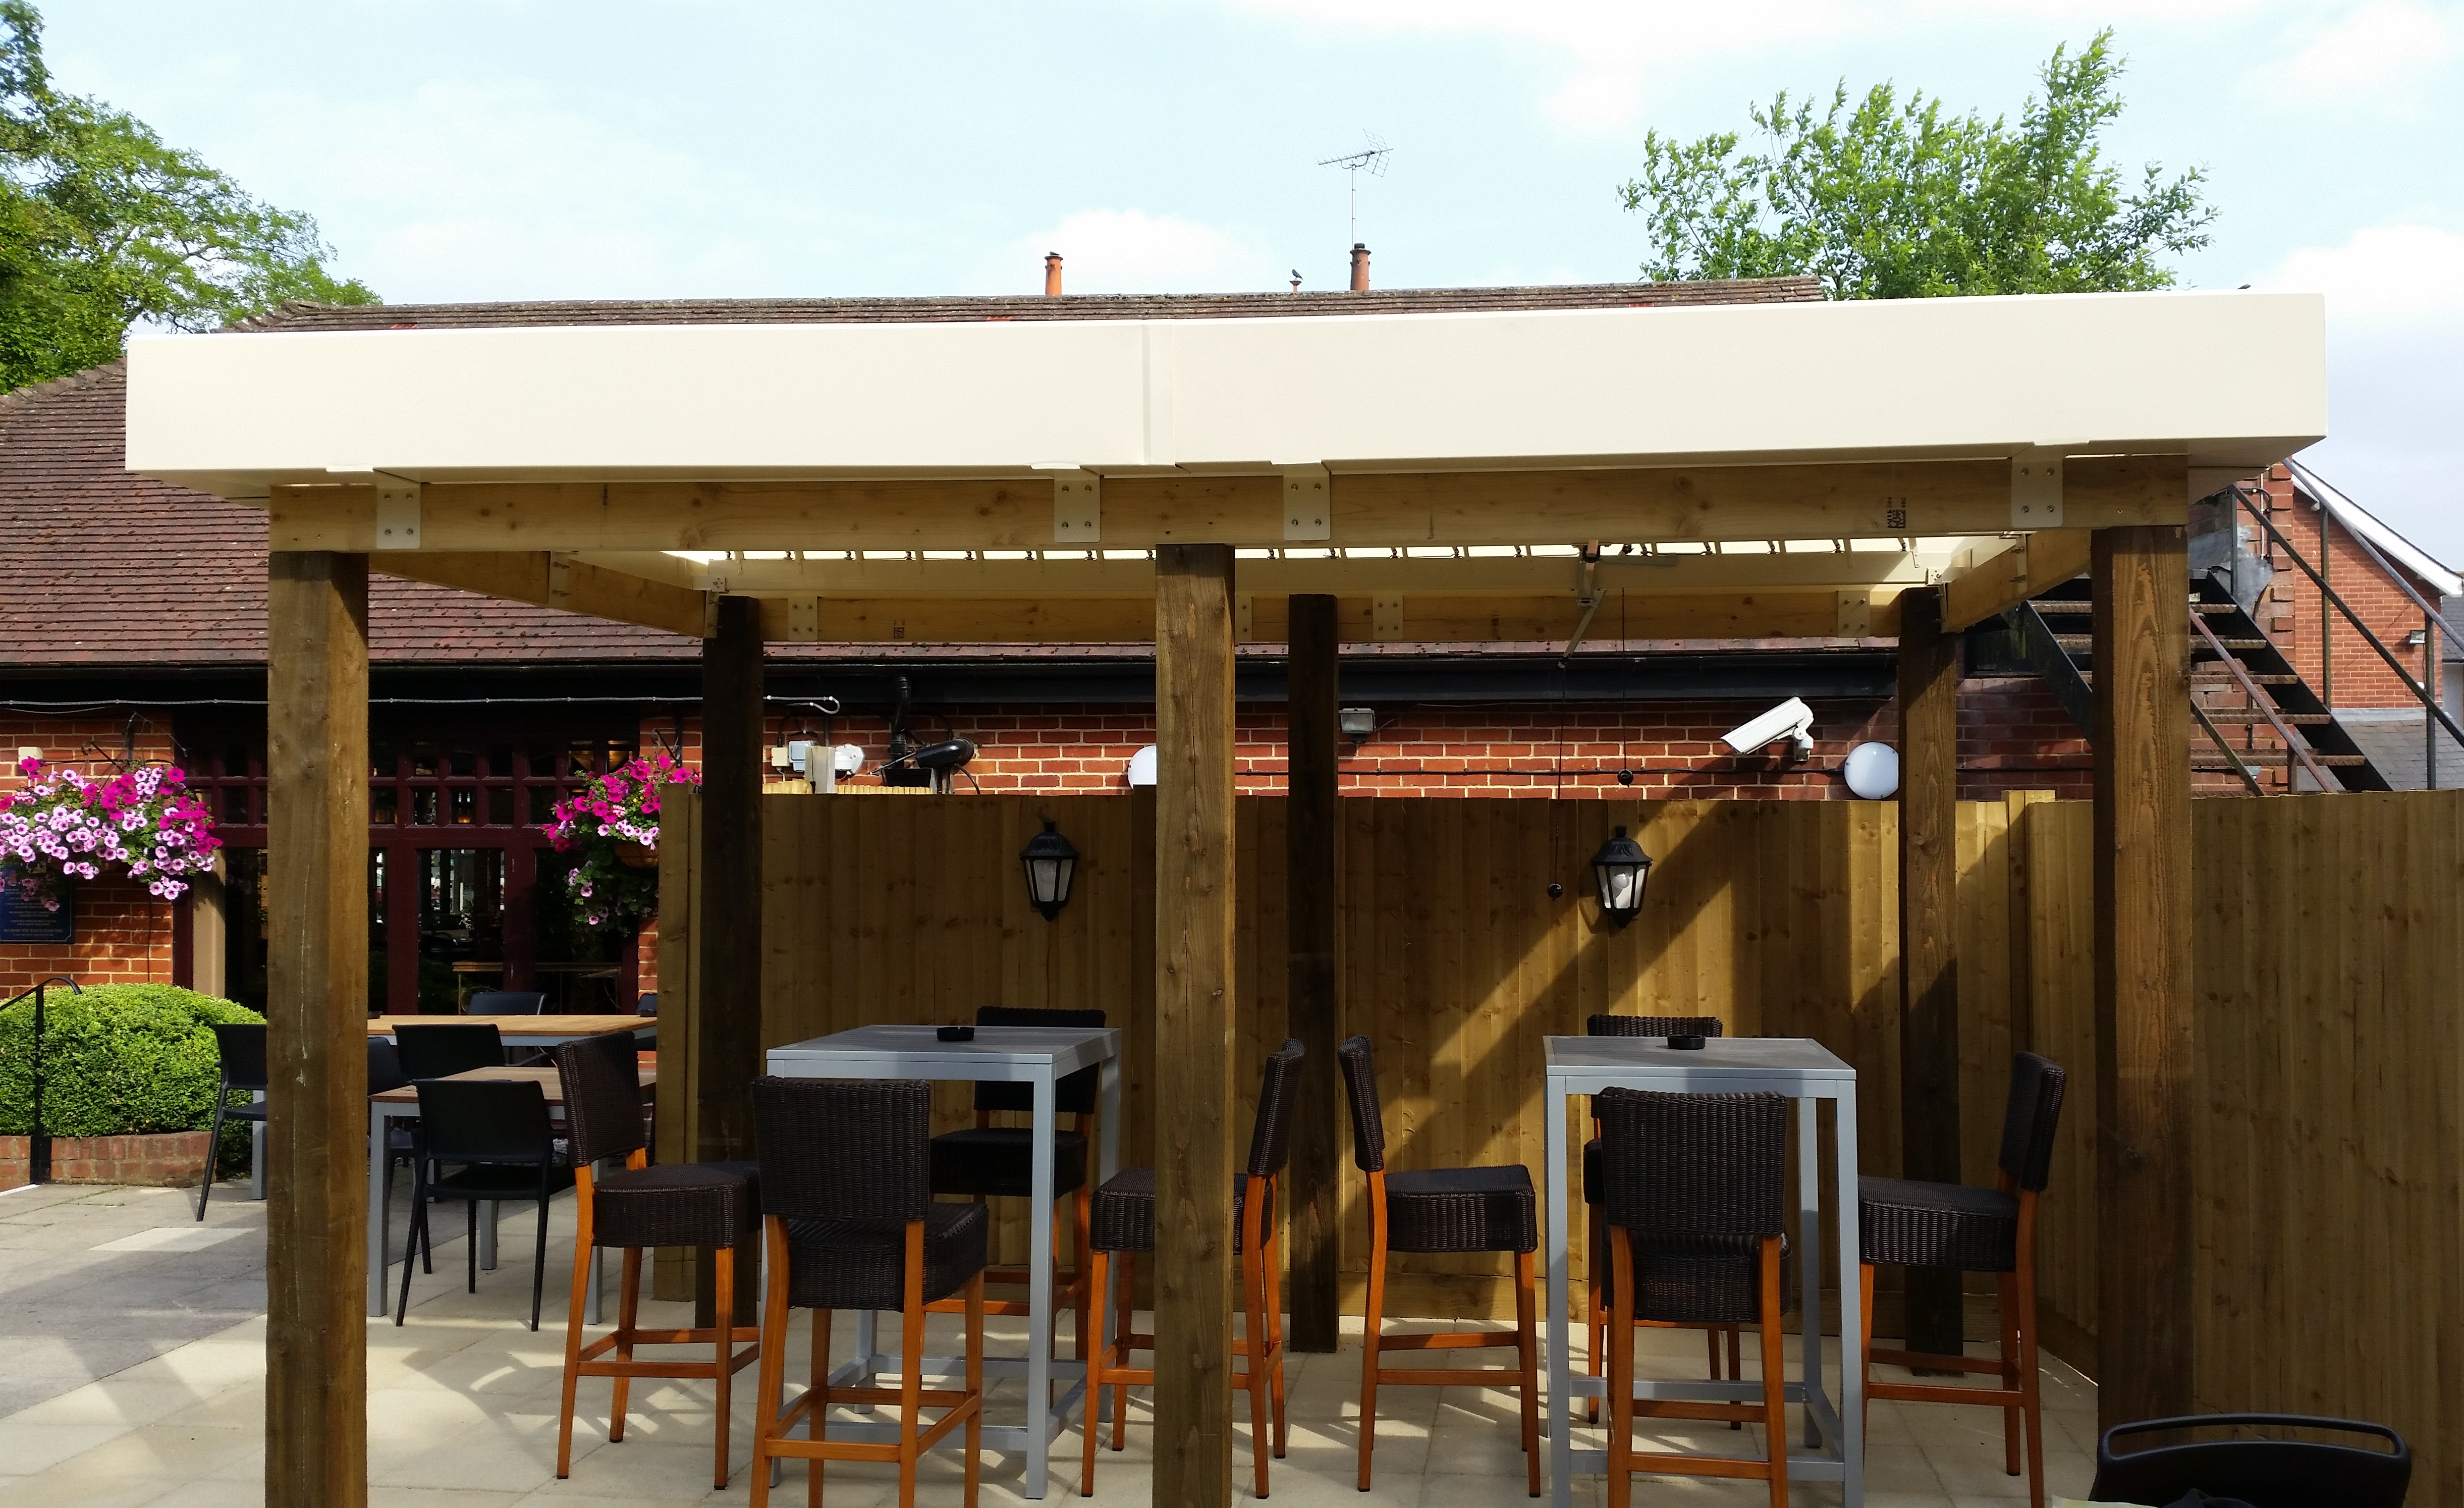 21a pubrestaurant fleet hampshire outdoor commercial drinking and dining area